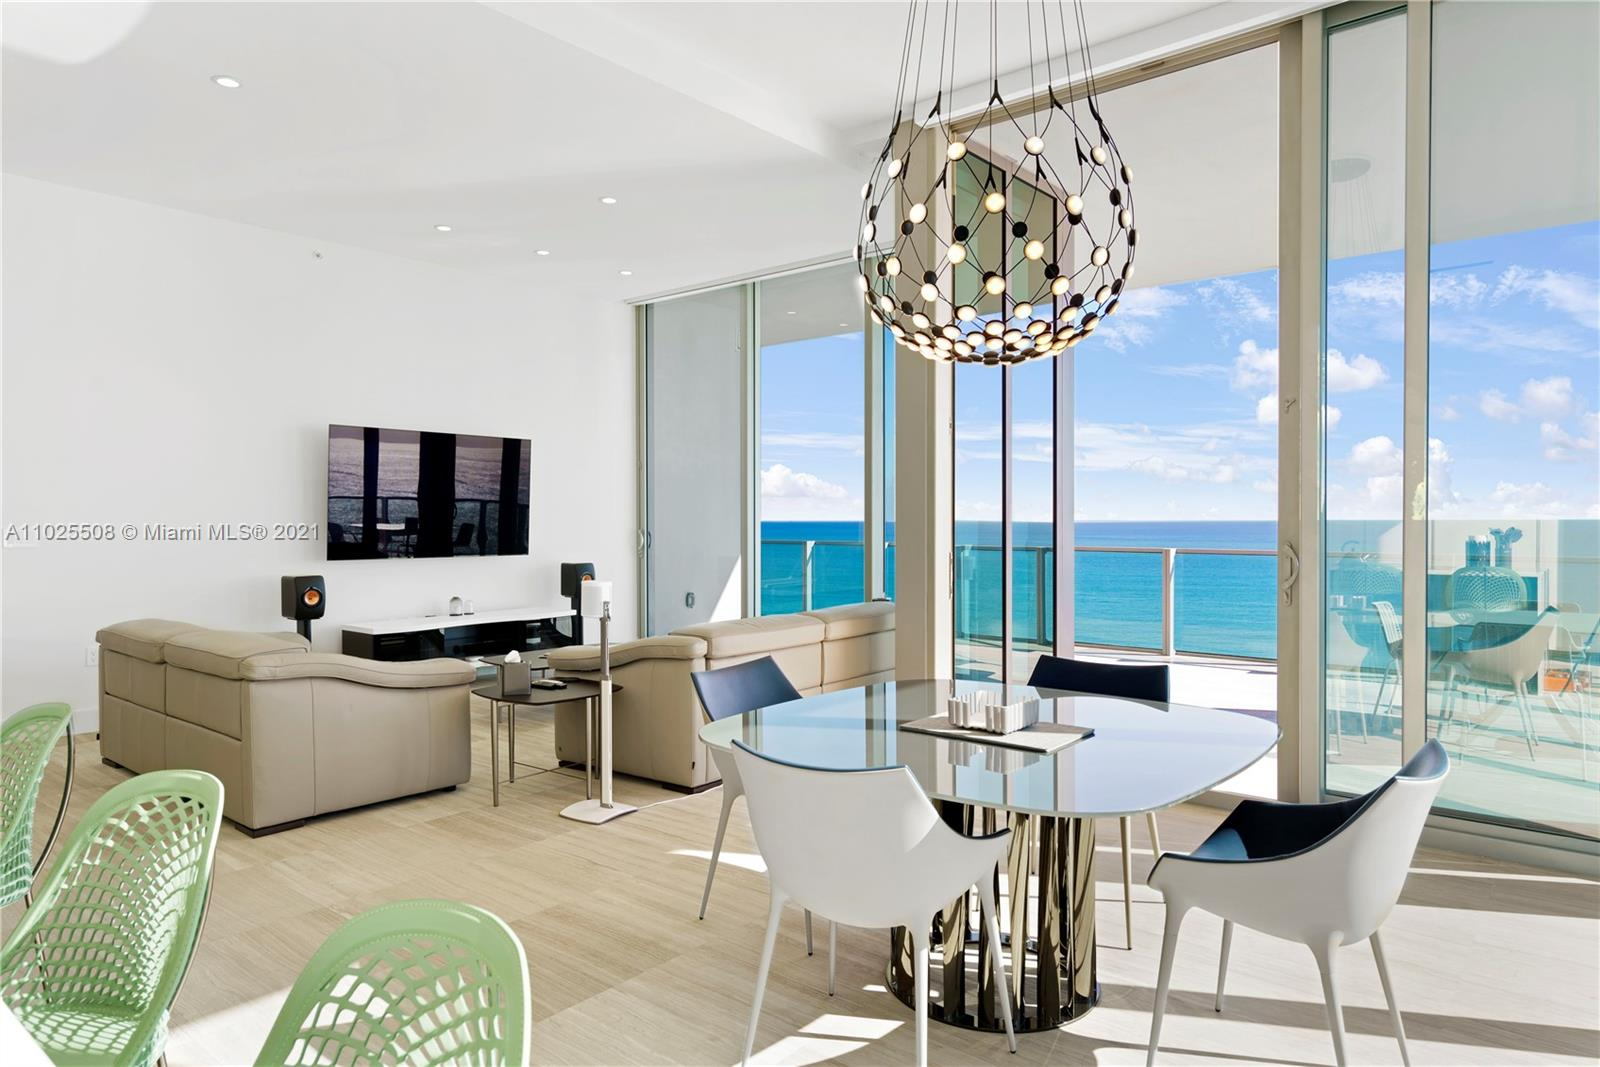 Rarely available Southeast Corner Unit at L'Atelier Boutique Building with 25 residences in Miami Beach.  Enter through your Private elevator to a  flow thru residence with 4 bedrooms/4.5 bathrooms.  Direct Ocean views, Biscayne Bay views, Intracoastal Waterway, Miami Beach Skyline and Downtown Miami. Expansive Balcony with over 1,300 sq. ft. to entertain or just relax.  12' ceilings,  Ornare Closets, Italian kitchens by Poliform with Gaggenau appliances,   L'Atelier offers 24hr valet, pool & beach attendant, oceanfront infinity edge swimming pool, poolside cabanas, bar, whirlpool spa, hammock garden, spa facility w/sauna & hammam, & double height state-of-the-art gym.